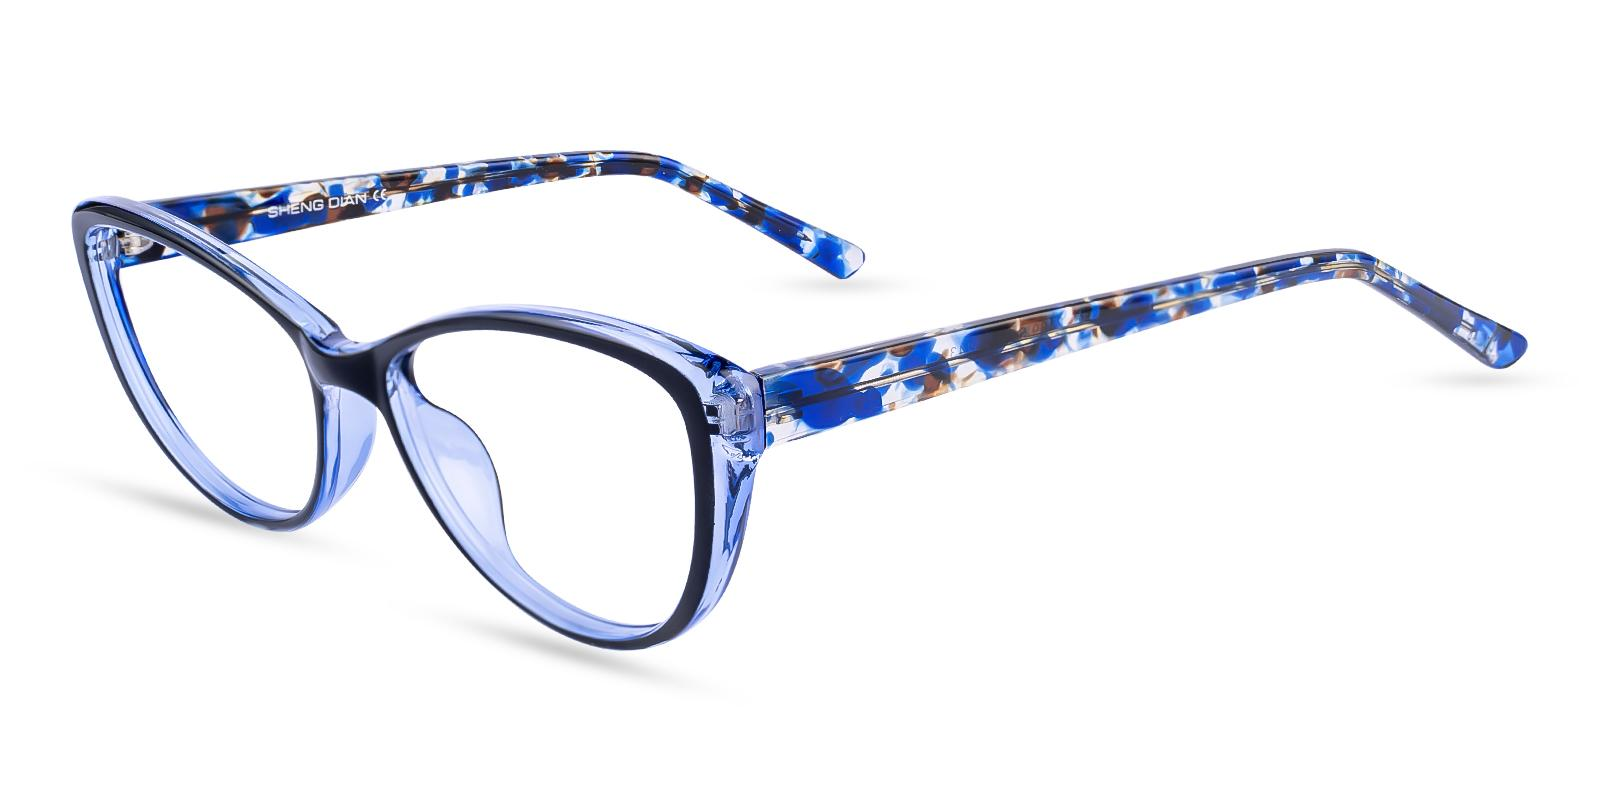 Memento Blue Acetate Eyeglasses , UniversalBridgeFit Frames from ABBE Glasses